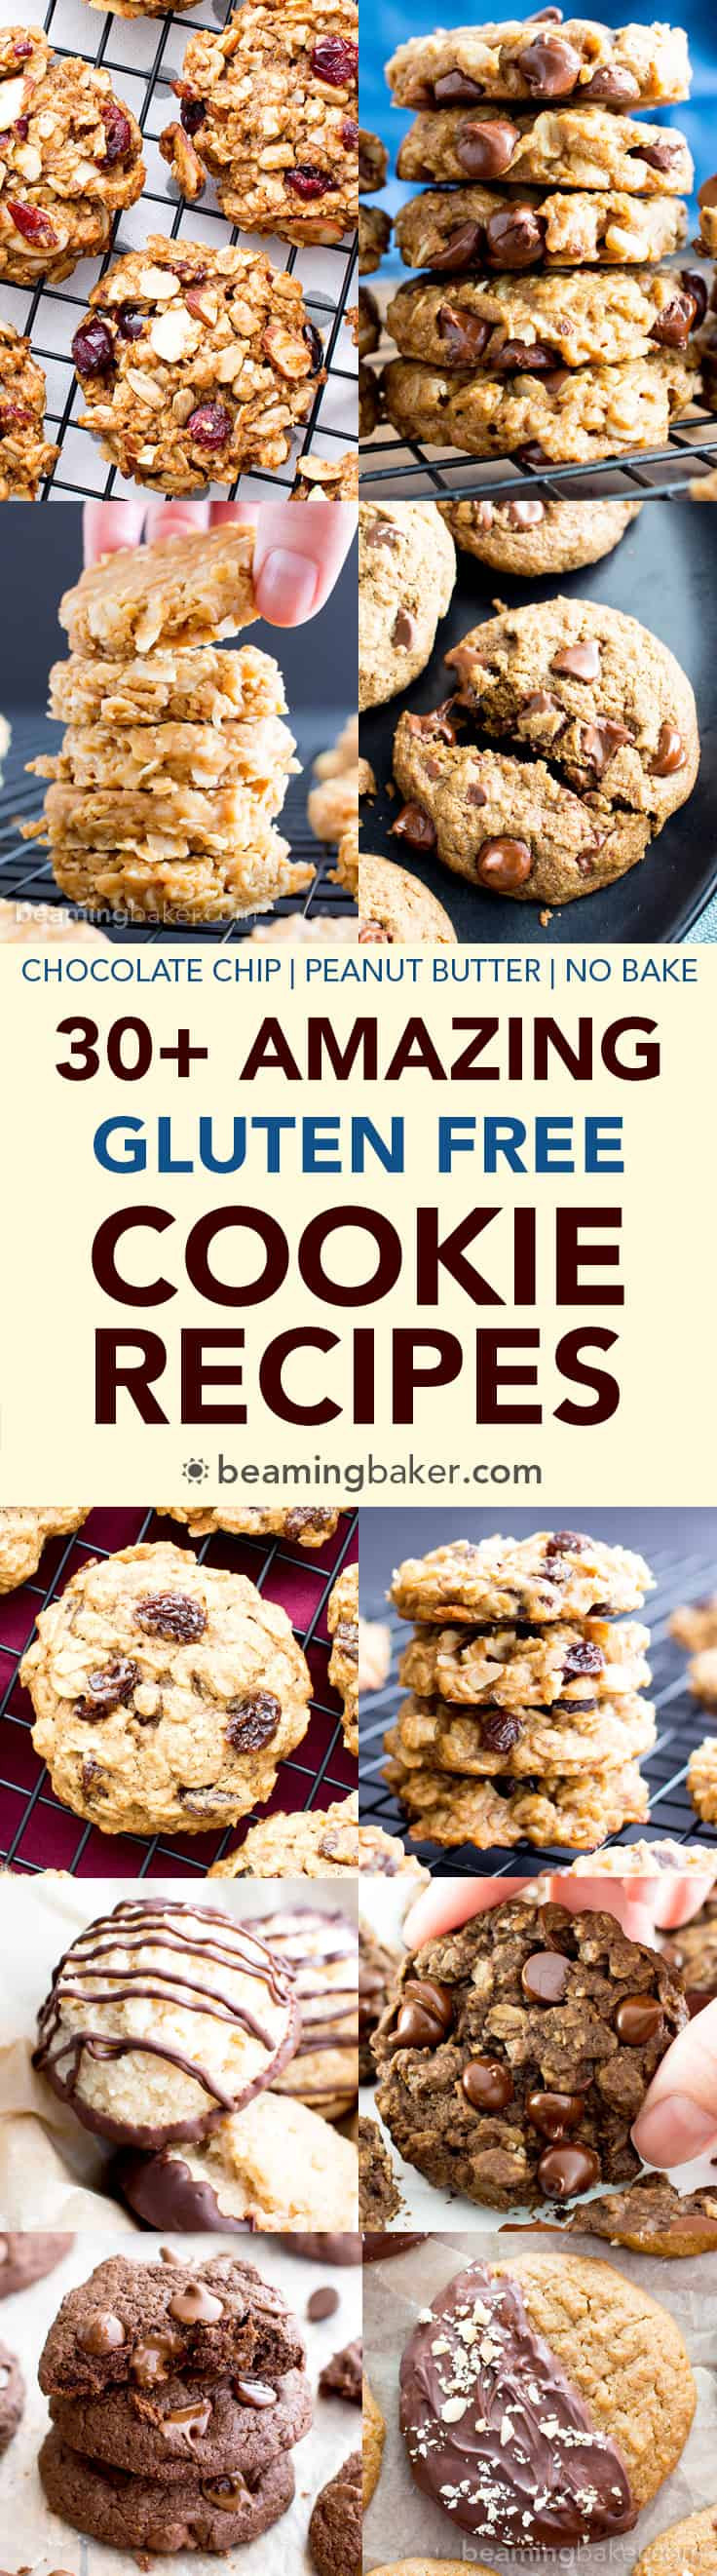 Healthy Gluten Free Cookie Recipes  30 Amazing Gluten Free Cookie Recipes Vegan Dairy Free